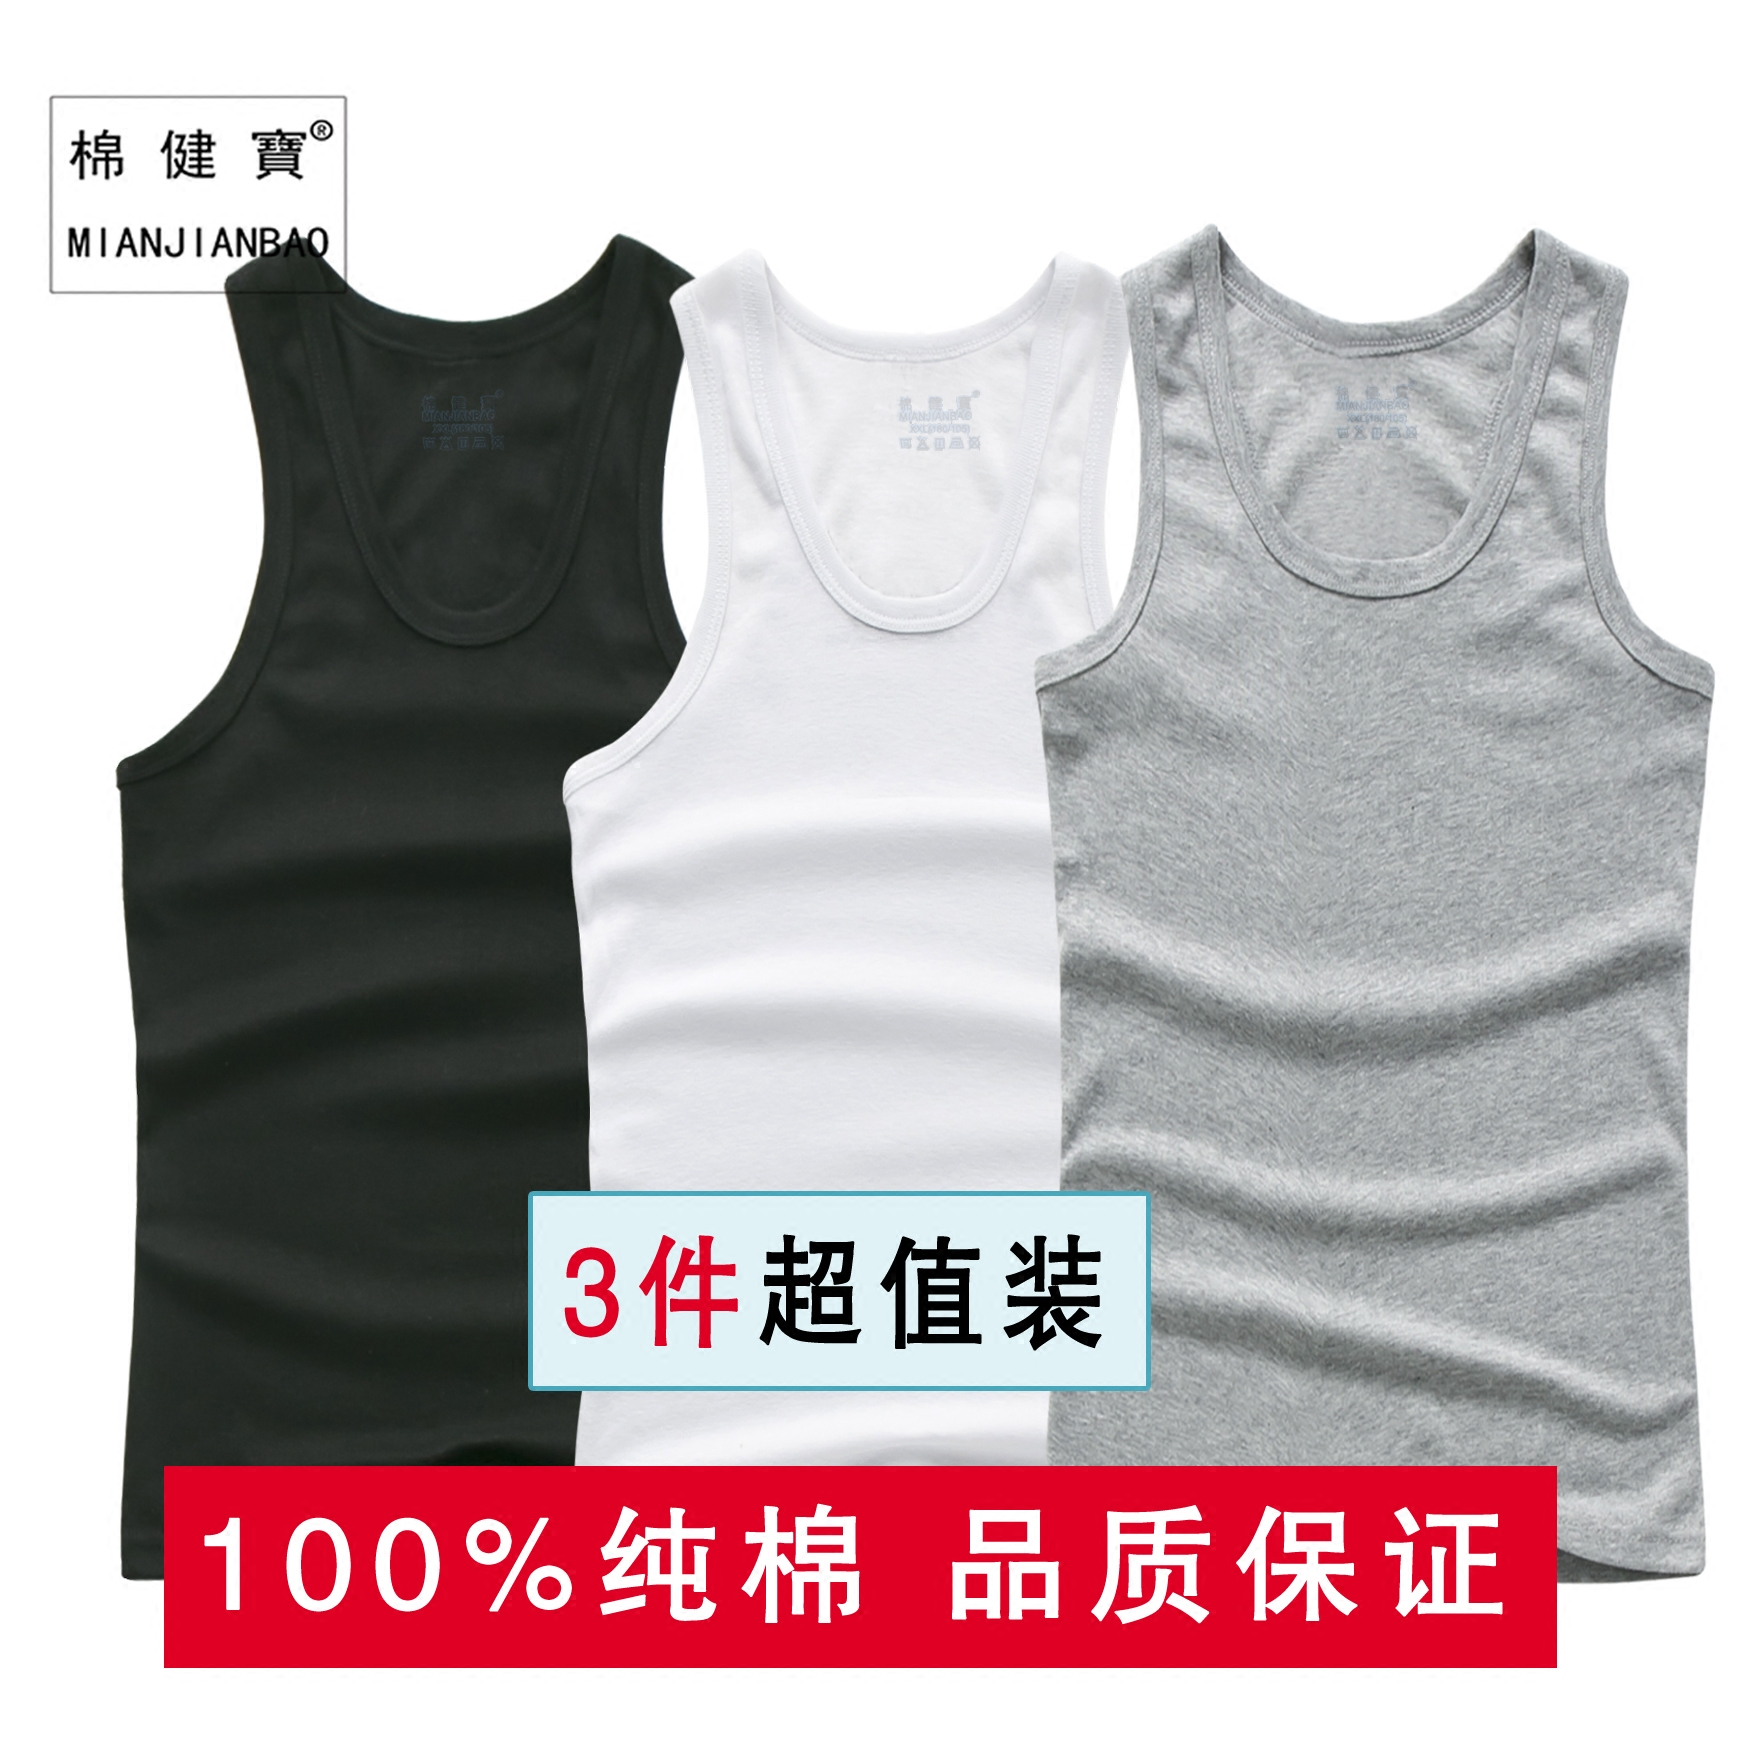 Men's tank top male cotton youth slim breathable bottoming tide summer sports fitness hurdles cotton men's tank top